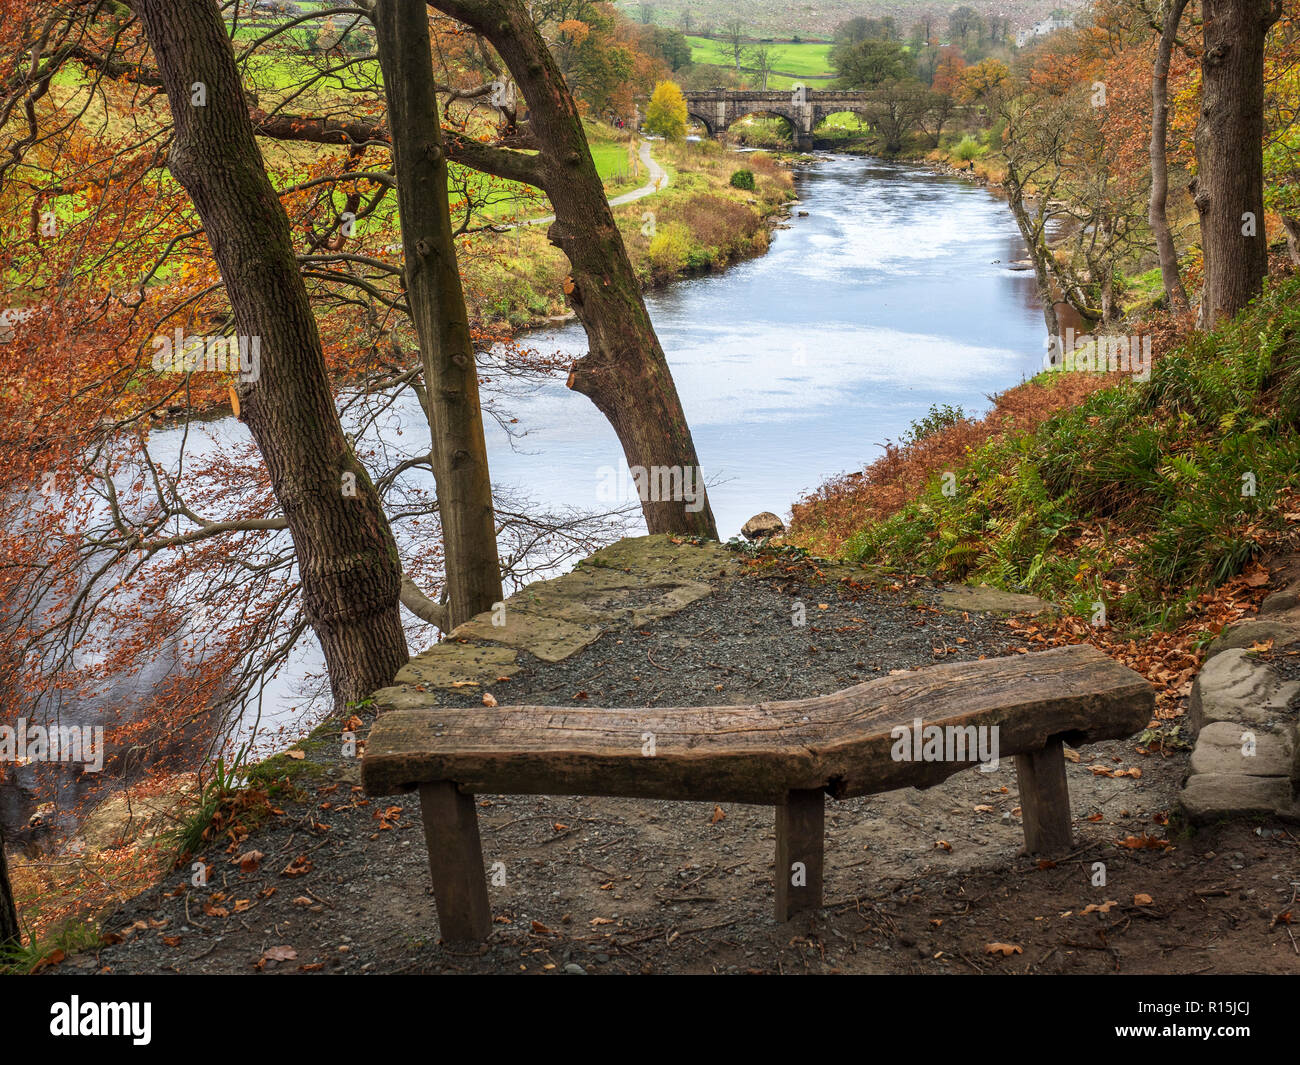 Bench at a viewpoint overlooking the River Wharfe and aqueduct footbridge in Strid Wood Bolton Abbey Yorkshire Dales England - Stock Image